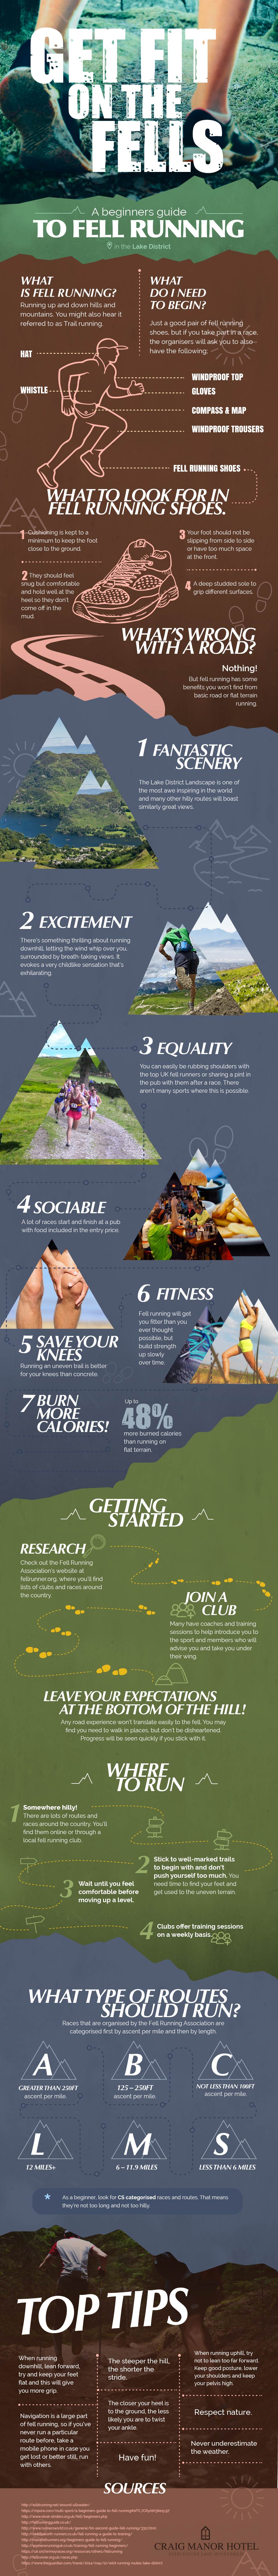 Everything You Need To Know About Fell Running - Infographic